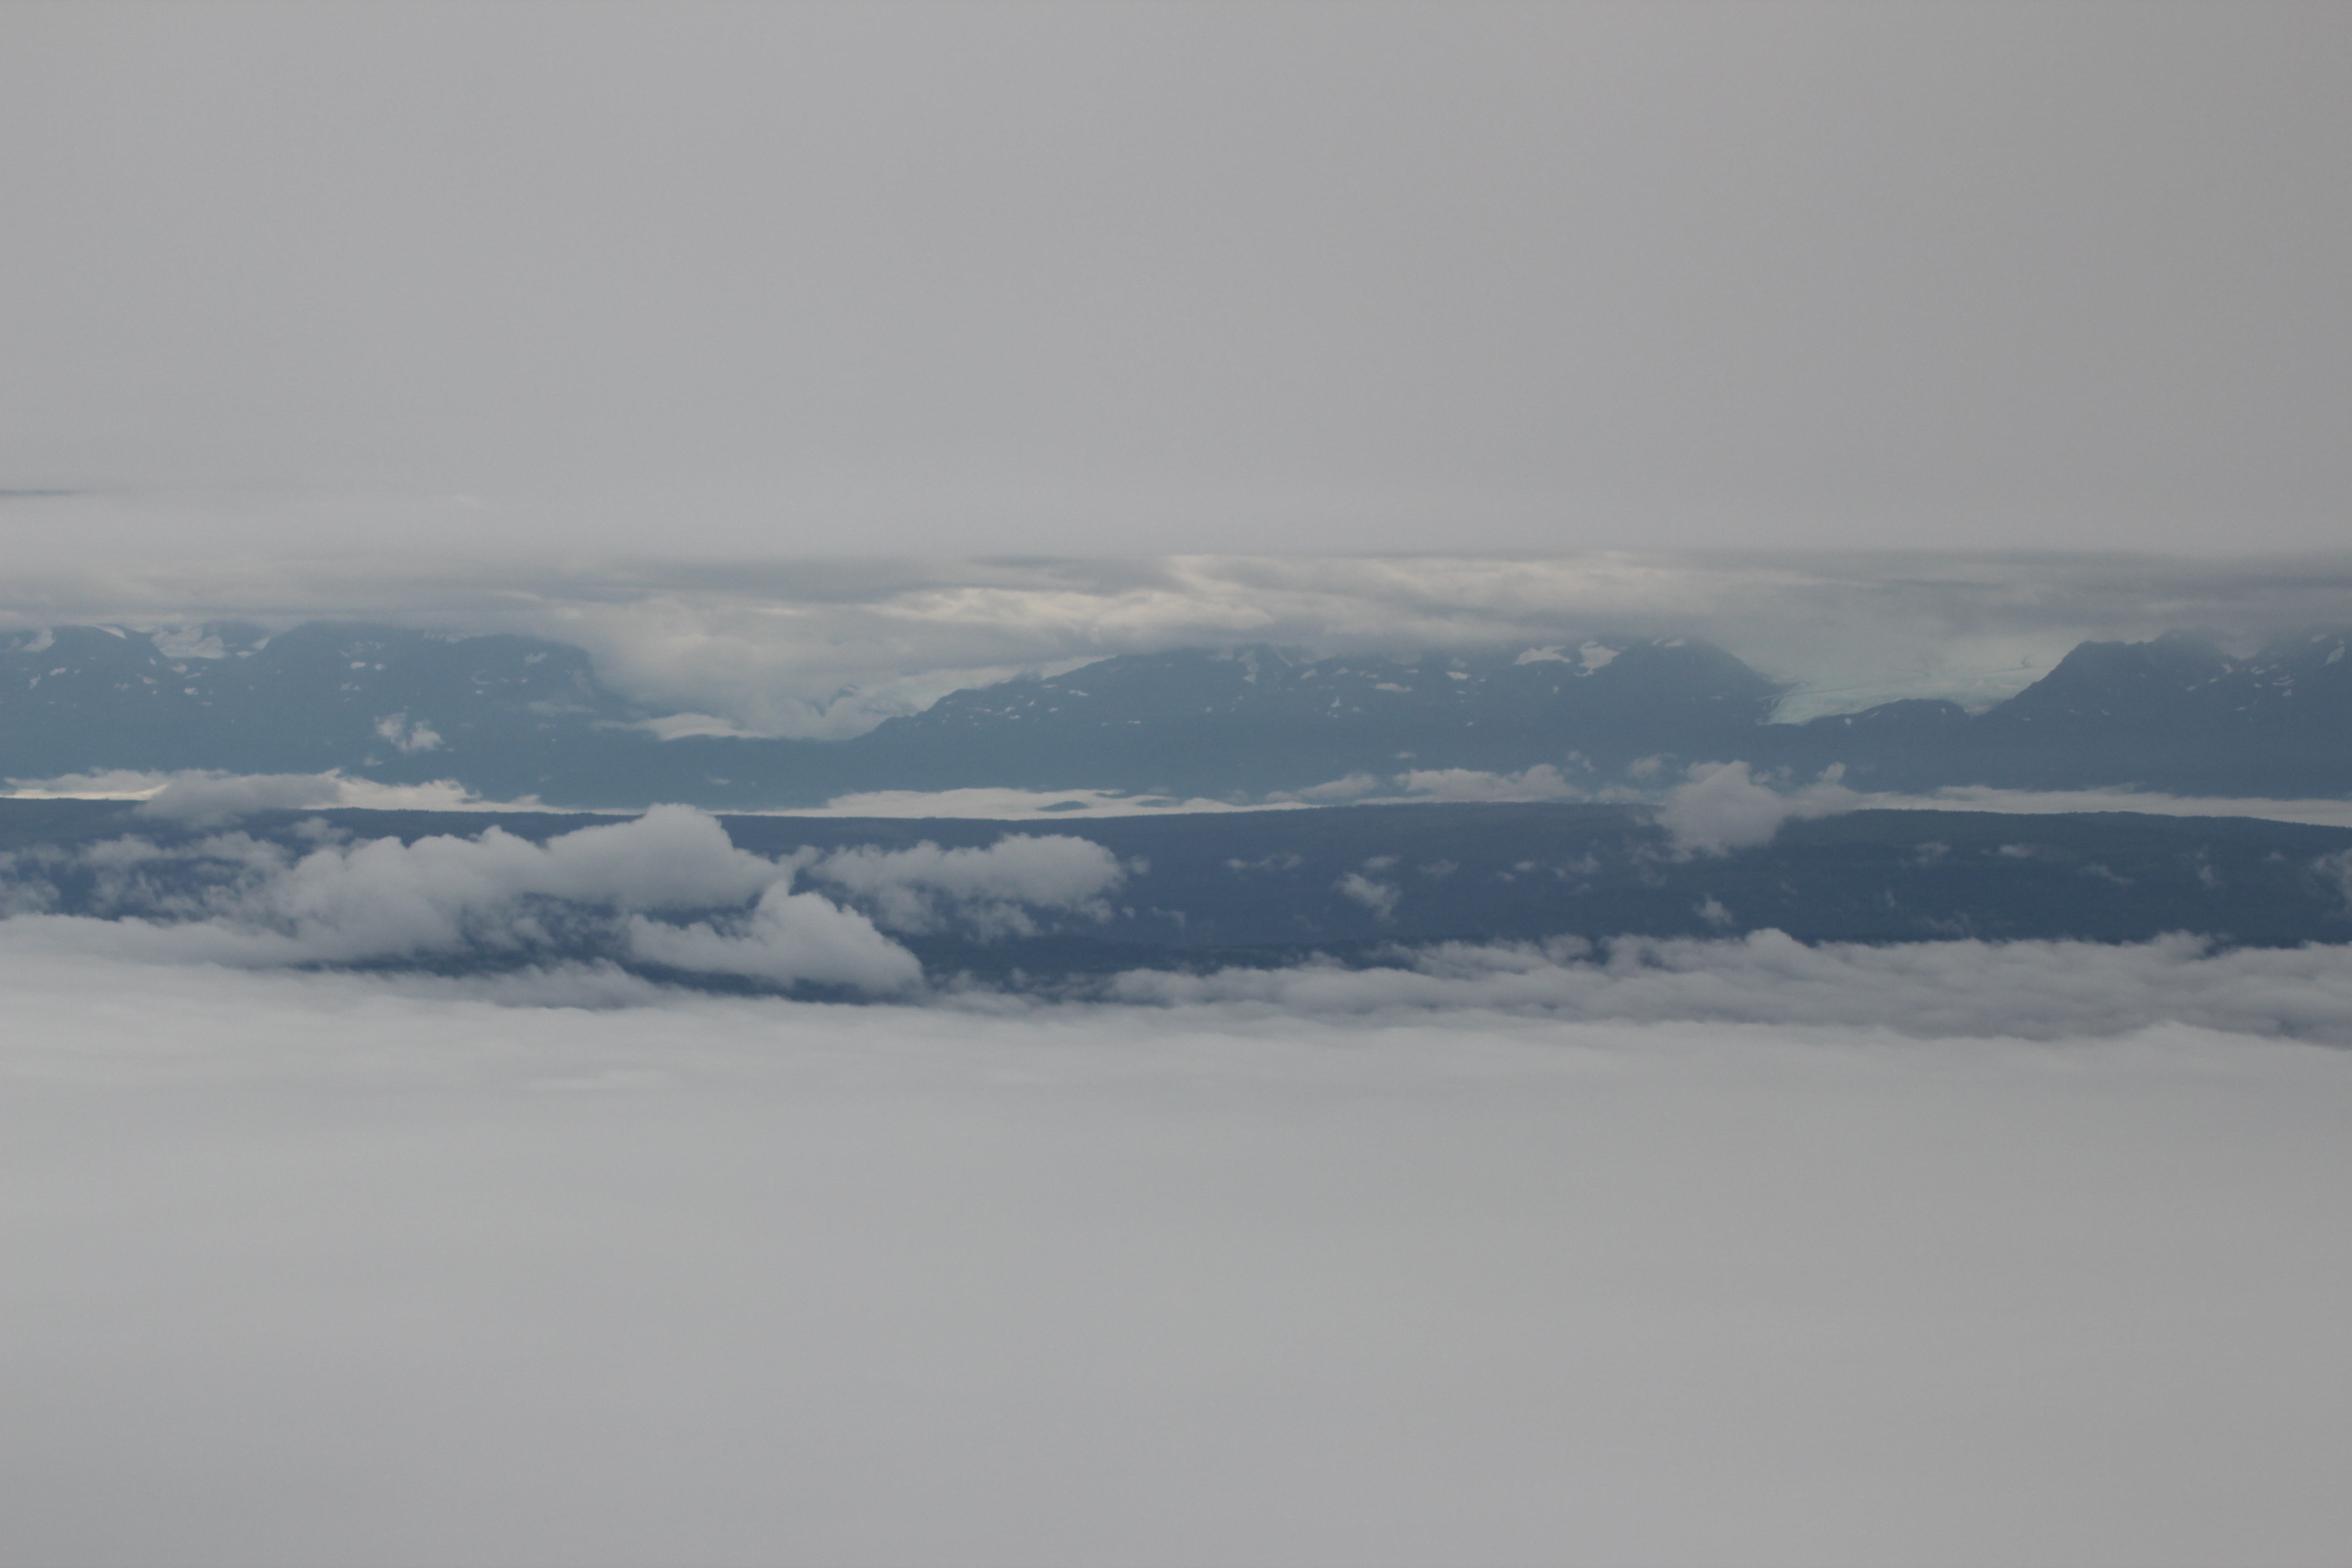 No photo editing required. This is how it looked as we returned towards the Kenai Peninsula.